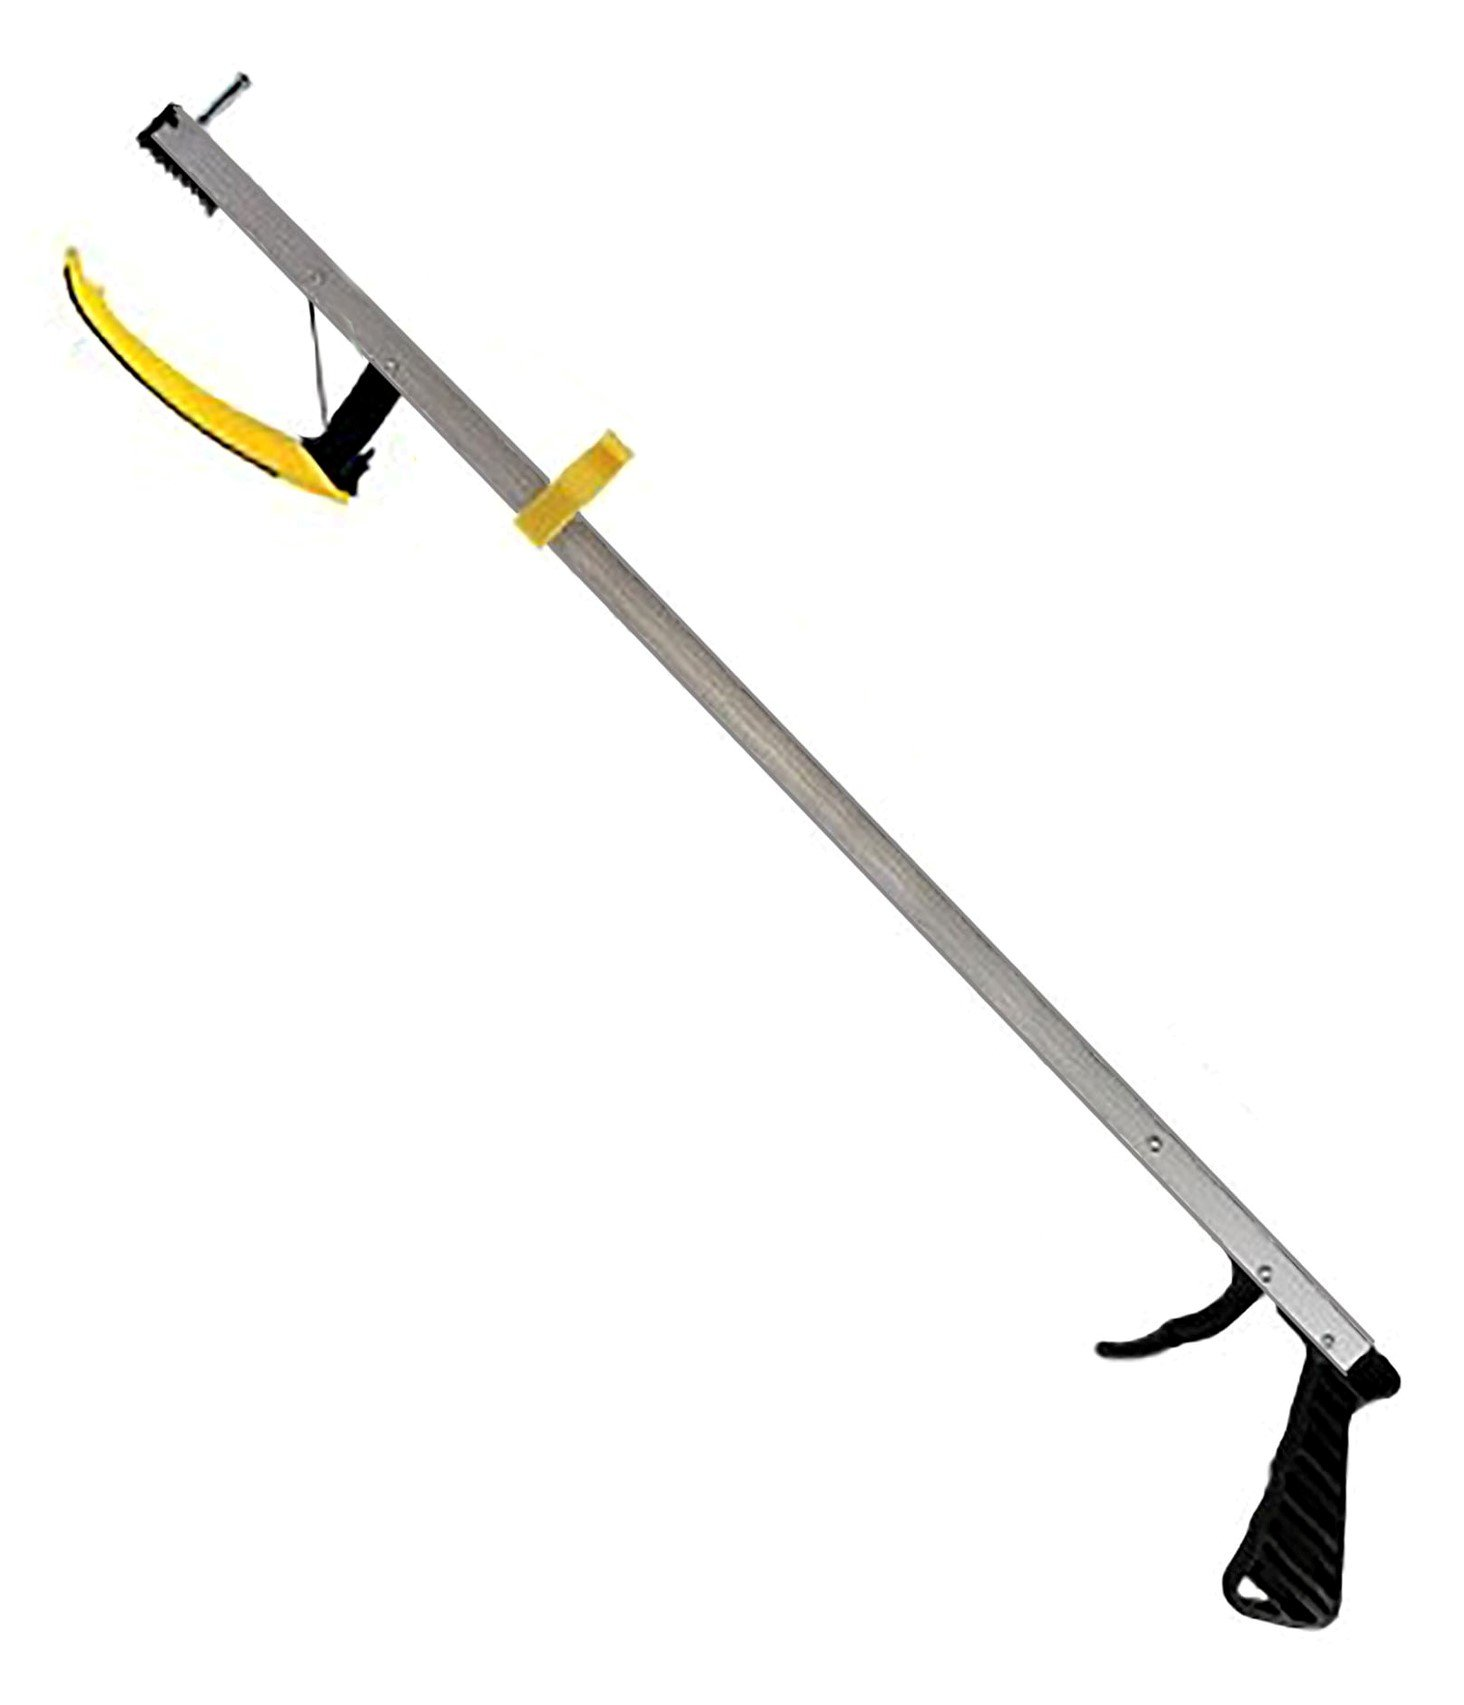 RMS 32 Inches Long Grabber Reacher - Magnetic Tip Helps Pick Up Small Objects - Fitted with Post to Assist with Dressing - Mobility Aid Reaching Assist Tool, Arm Extension (32 Inch) by RMS Royal Medical Solutions, Inc.